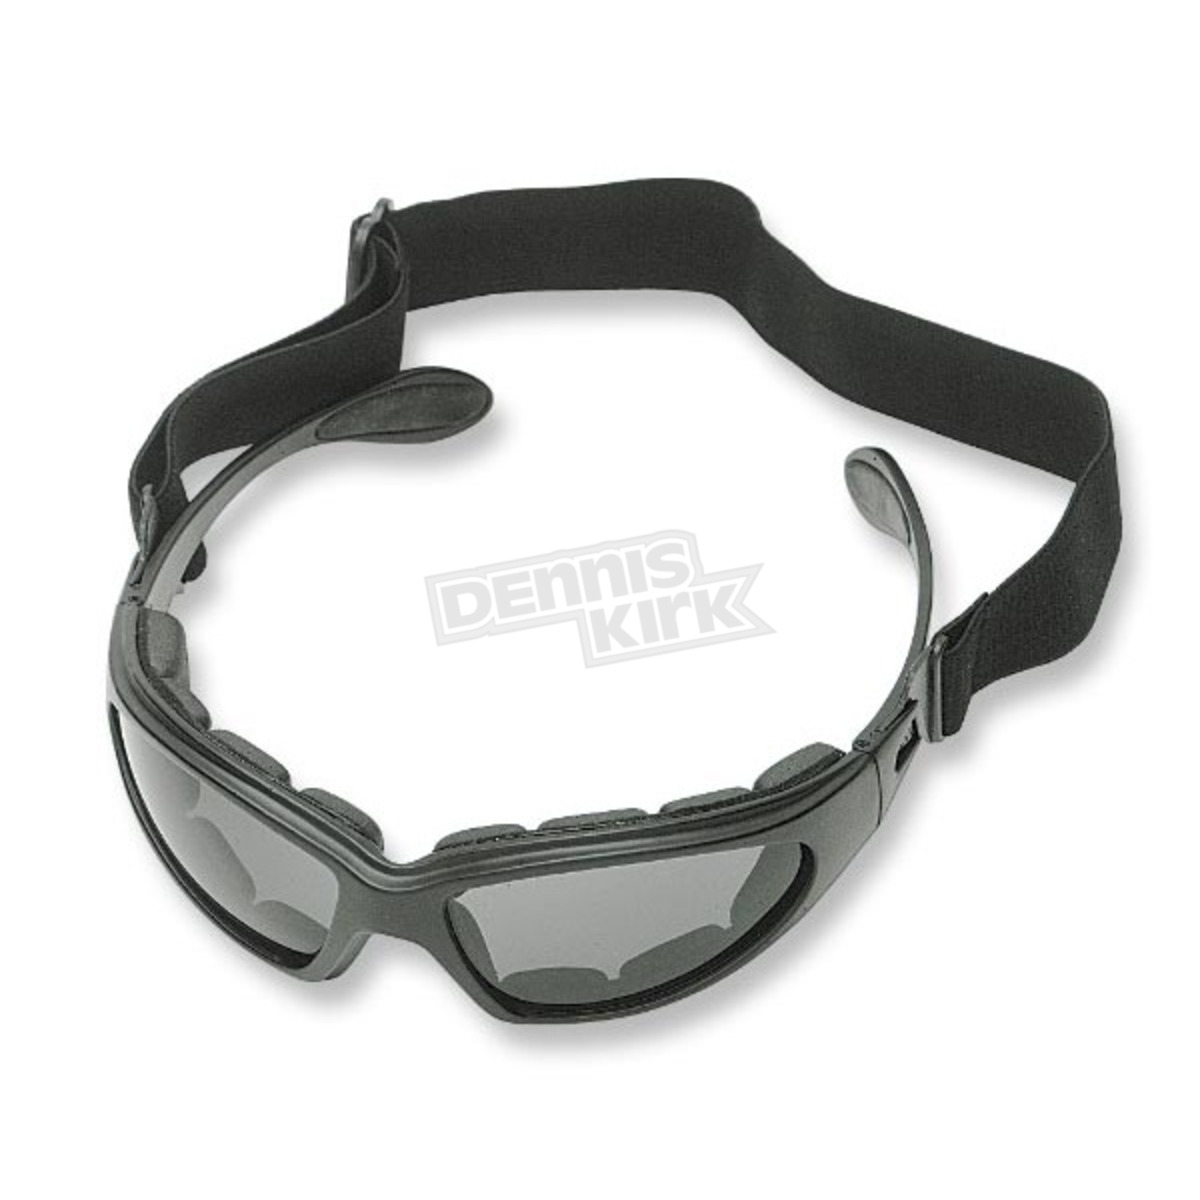 5f924afa30 Bobster GXR Sunglasses Goggles with Smoke Lens - GXR001 Harley ...